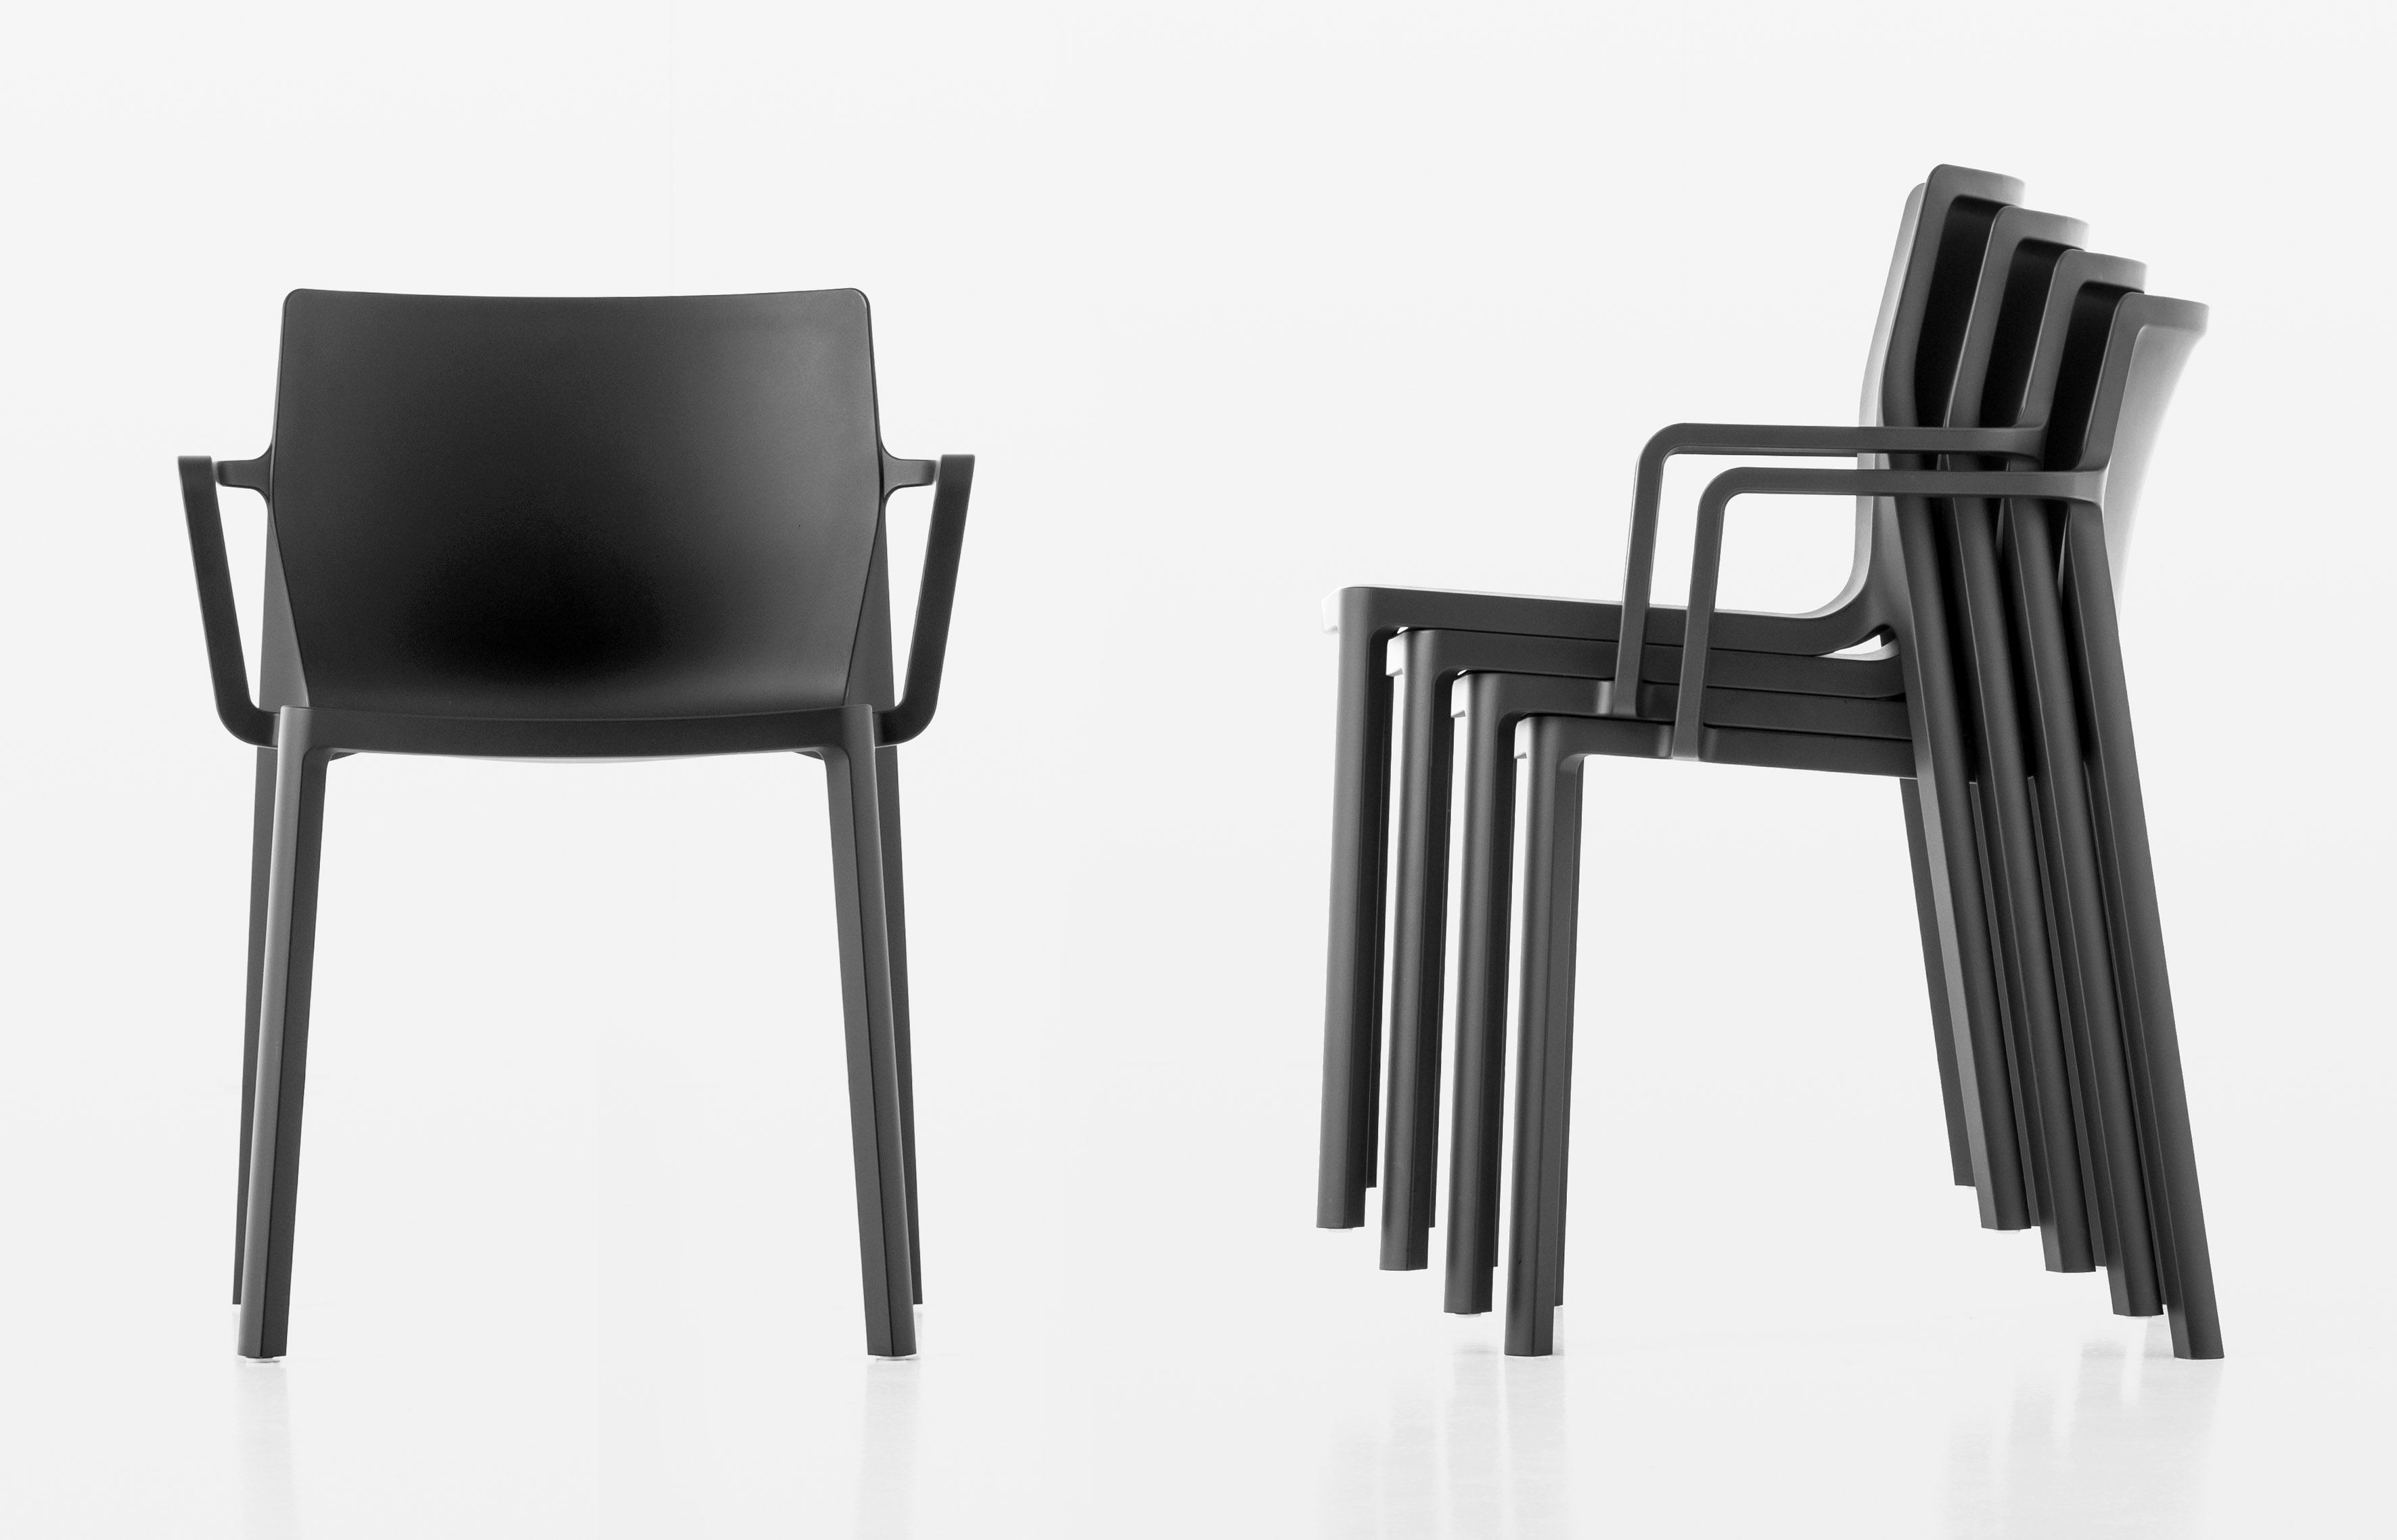 LP Chairs by LucidiPevere for Kristalia